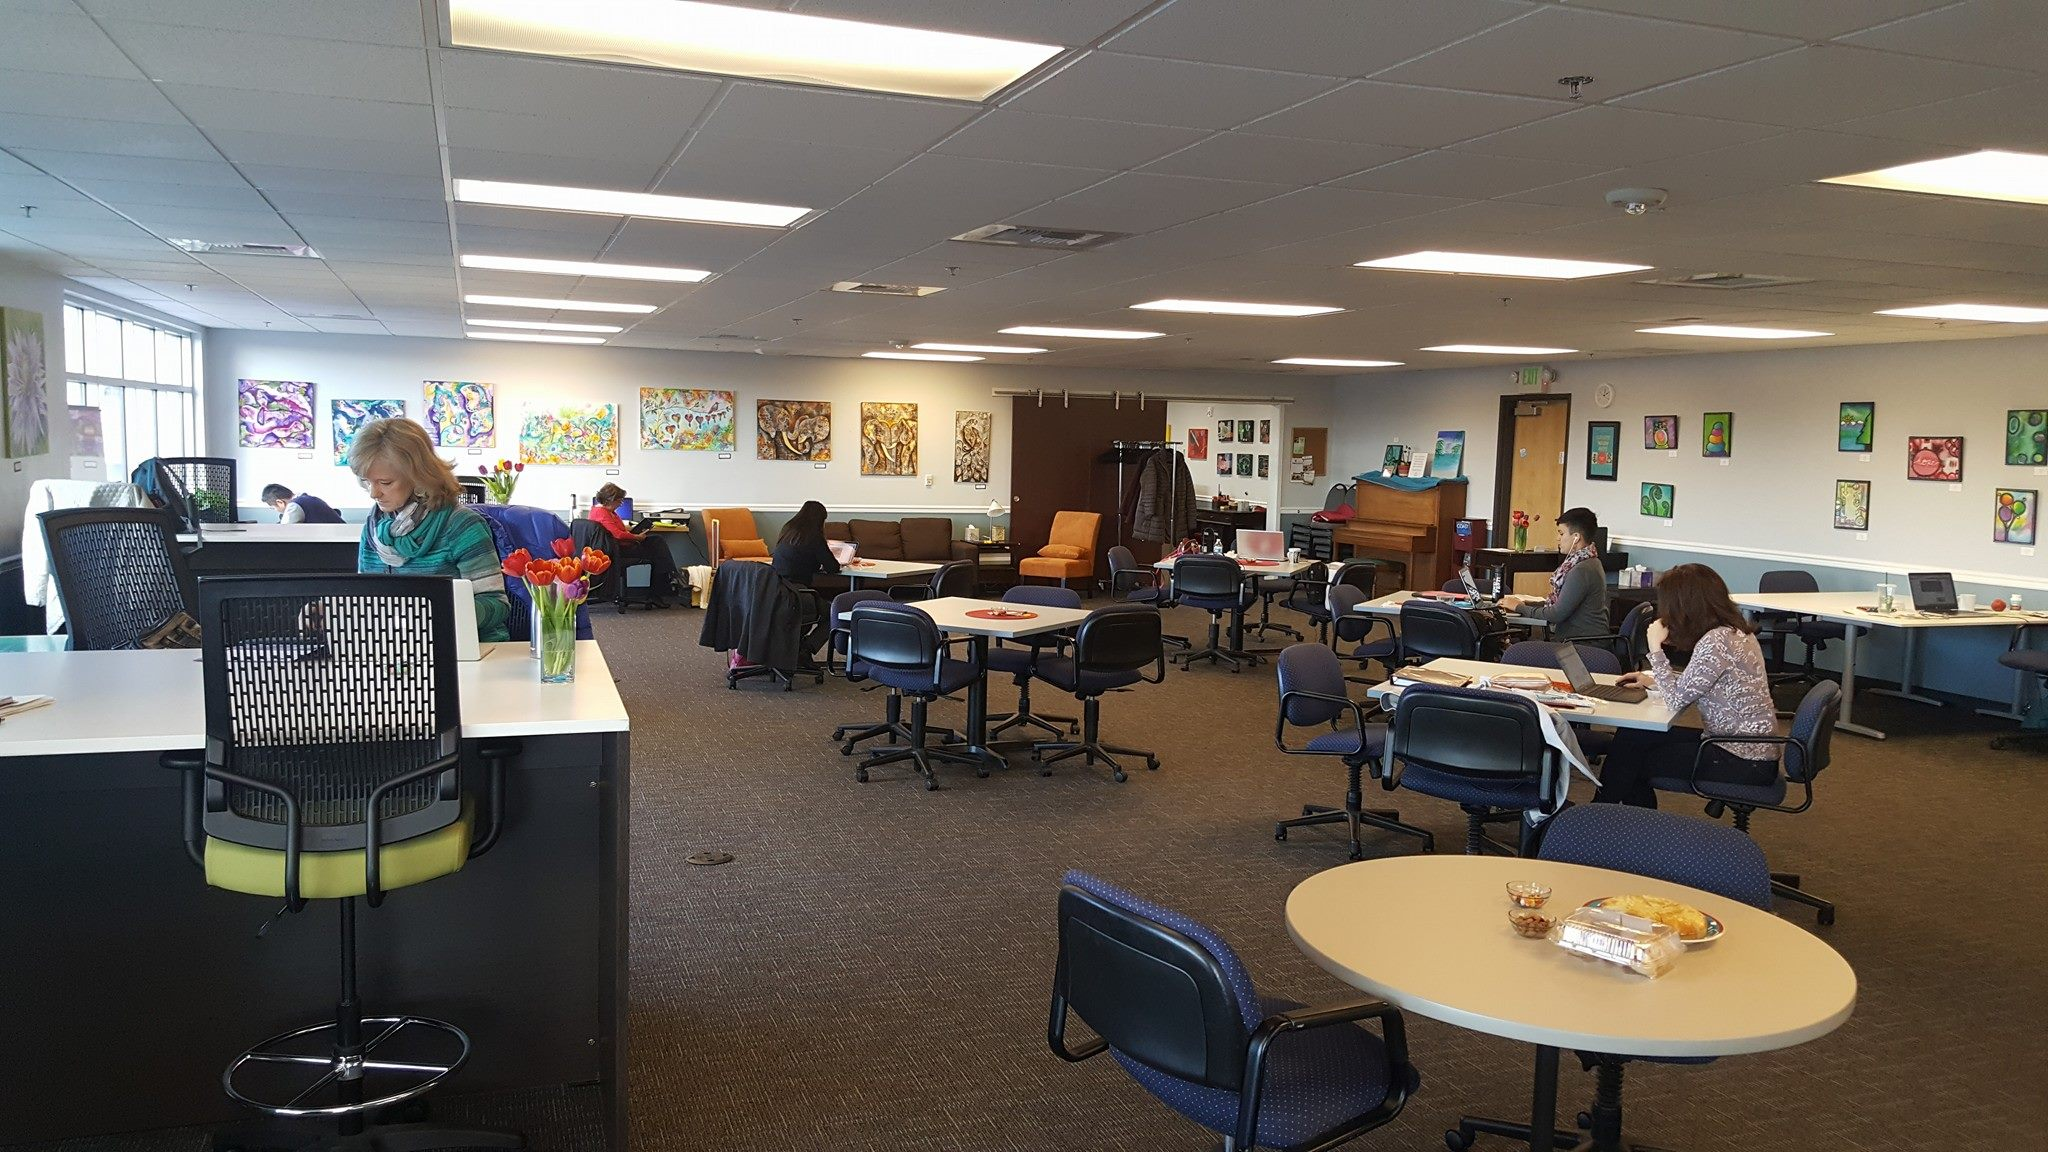 Coworking Day Pass In Lynnwood Davinci Meeting